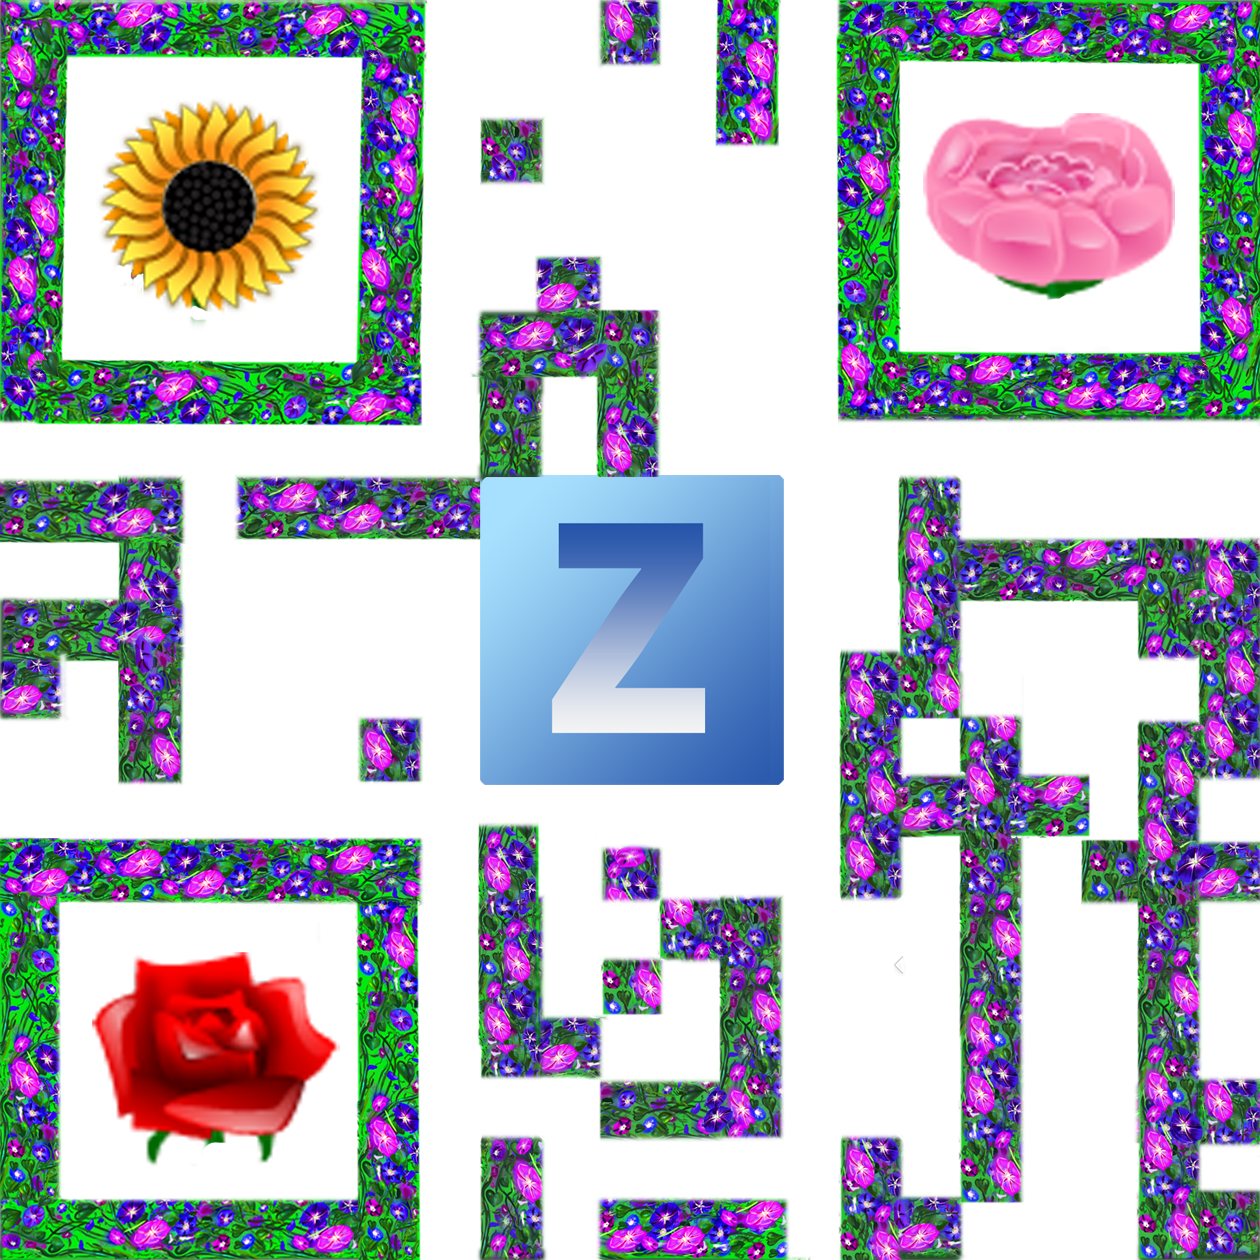 Pictures gallery of Zinkod, Zinkod, QRcodeZingi, Кьюаркодзинги, Zincod, Зинкод, Zinkod is an open book, in which everyone can make his own chapter.